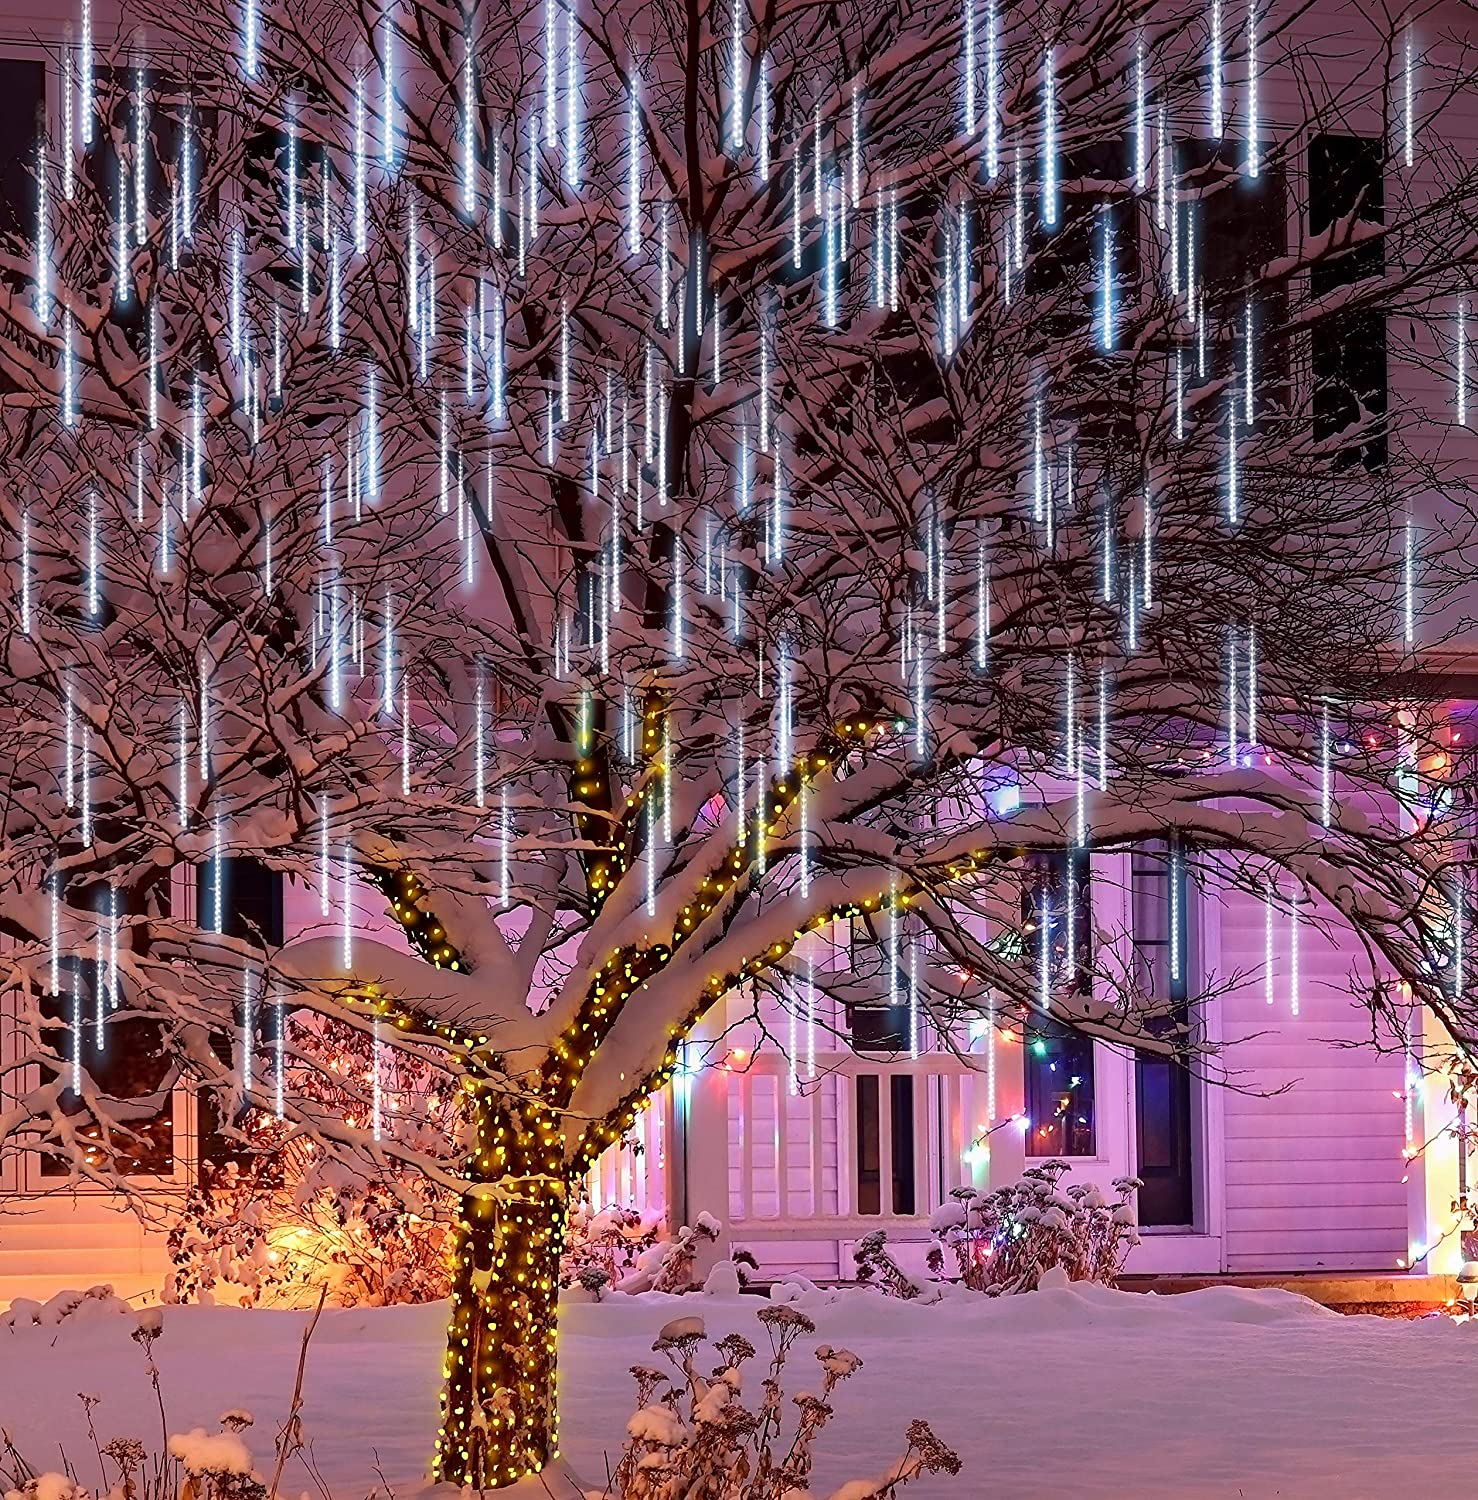 Joiedomi 3Packs Christmas Meteor Shower Lights Falling Rain Drop Icicle String Lights 288 LEDs 8 Tube 30cm for Halloween Christmas Holiday Party Home Patio Outdoor Decoration, White